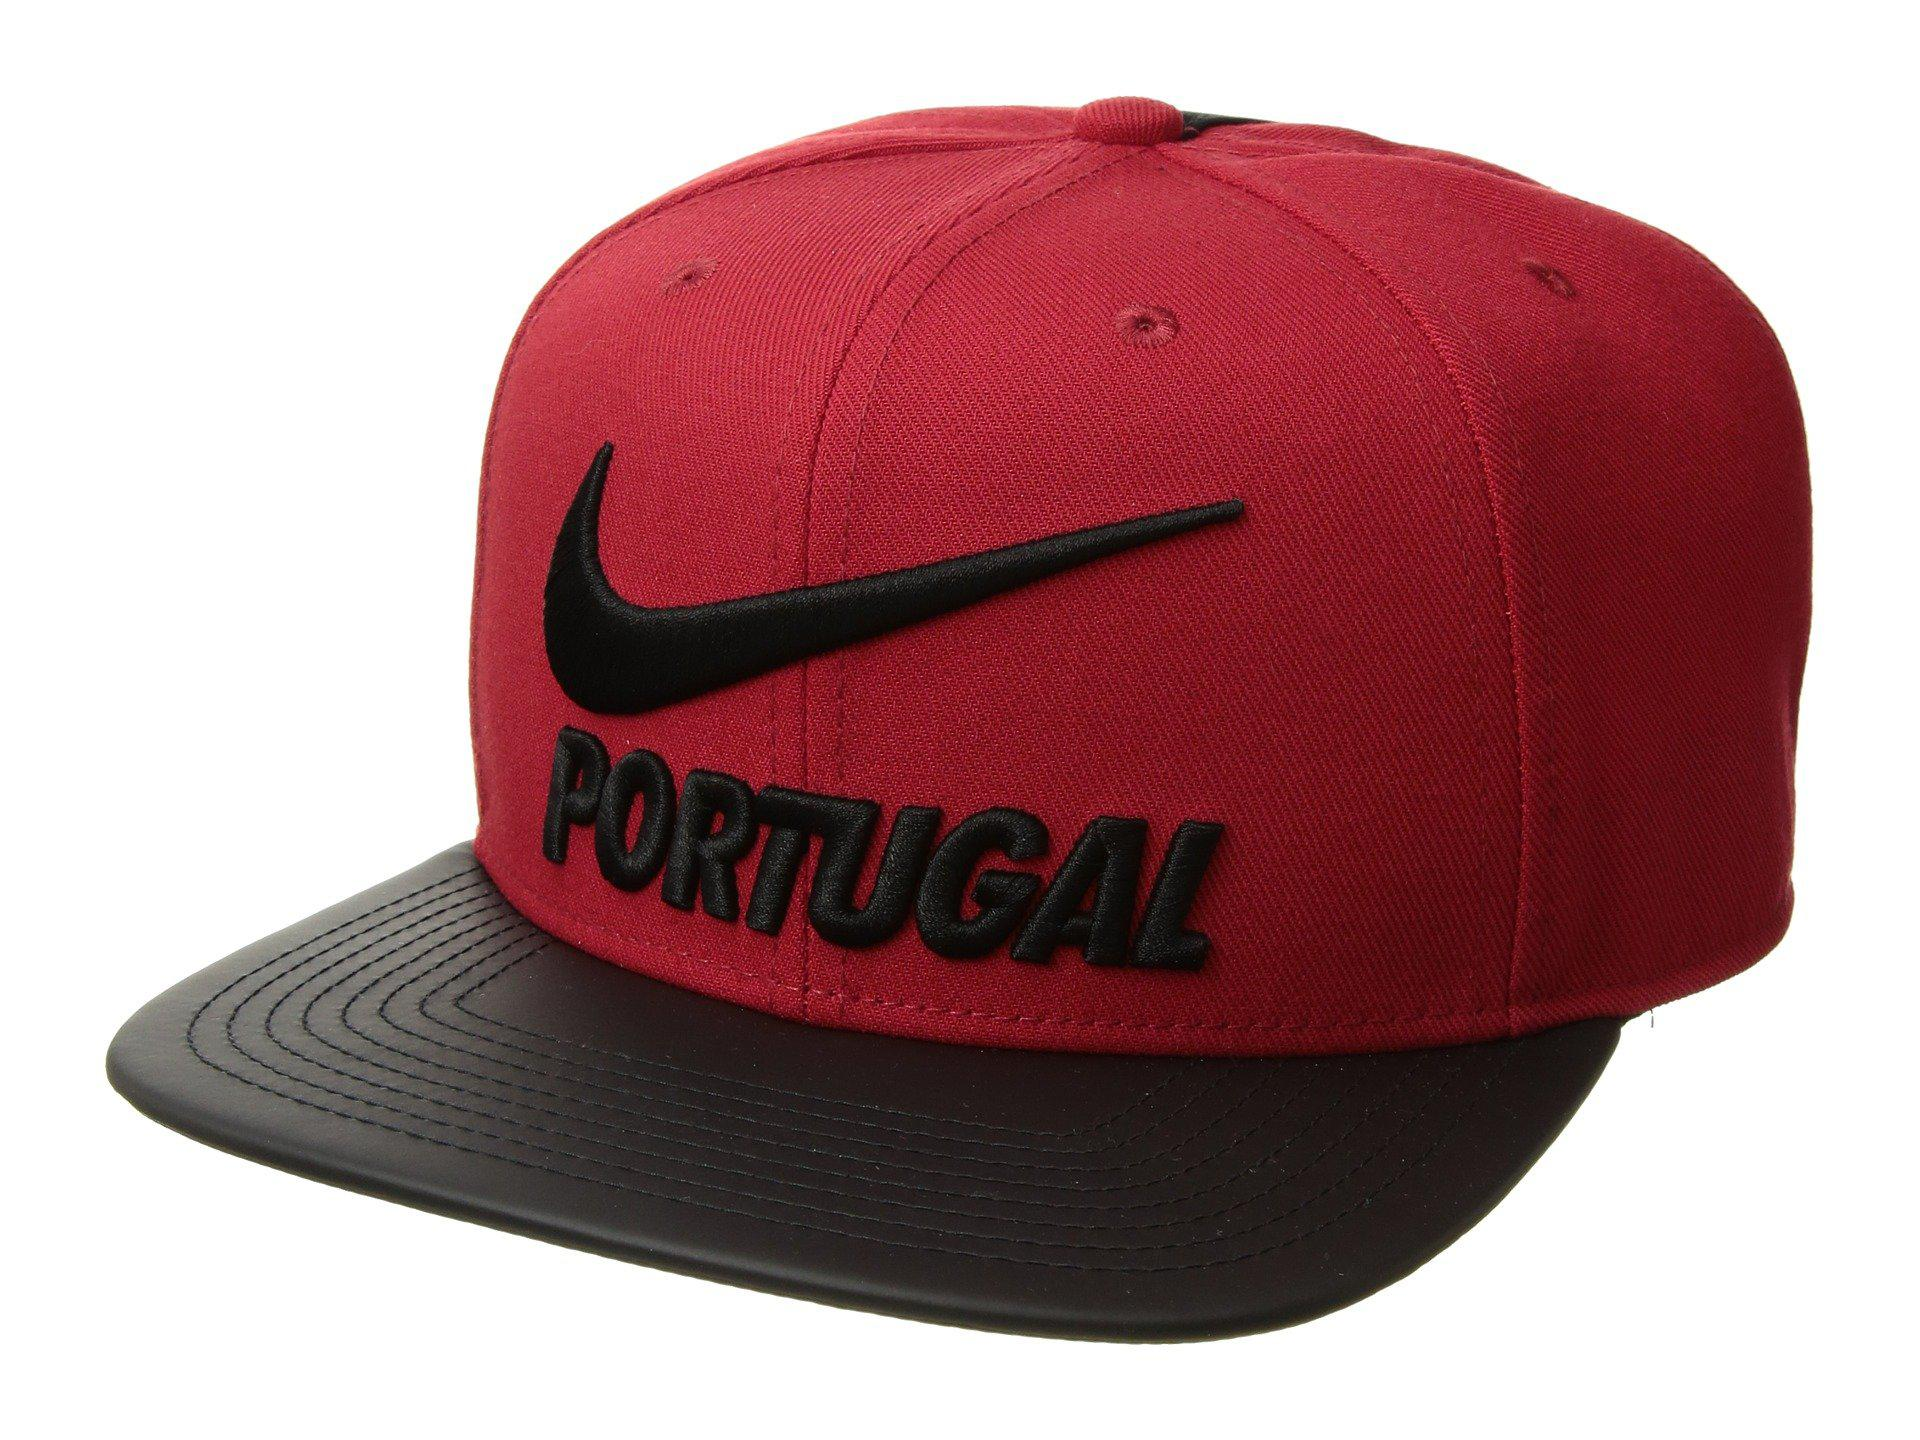 9e6a05e73ae Lyst - Nike Fpf Portugal Pro Cap Pride in Red for Men